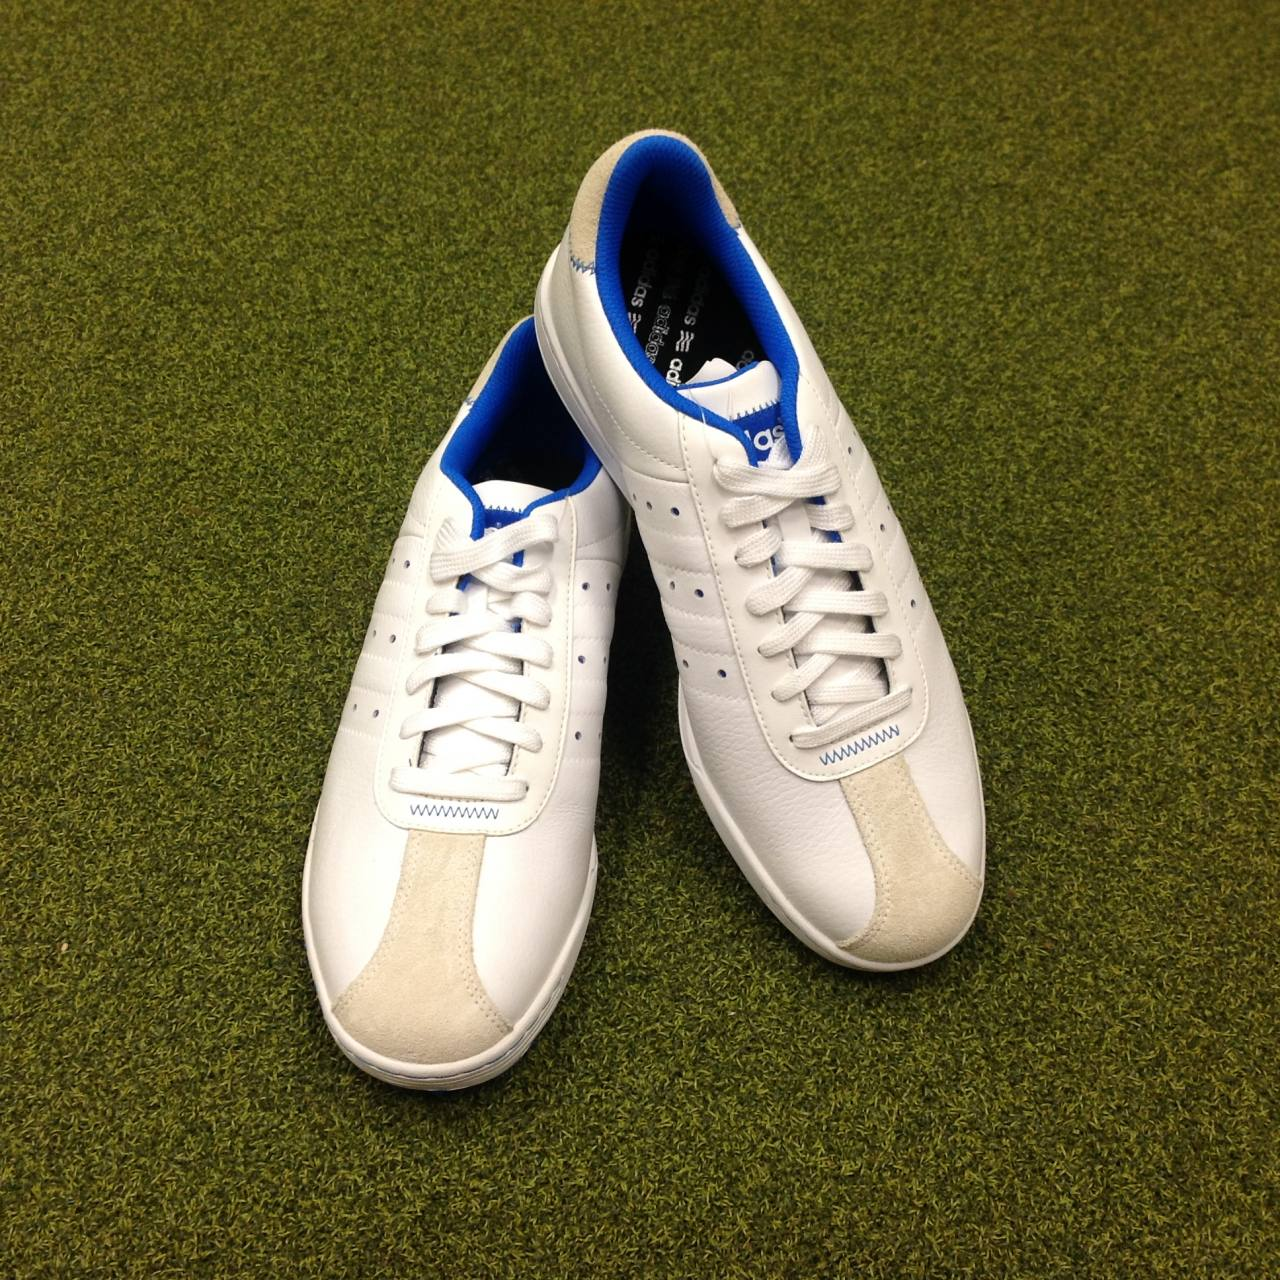 5359d27a66bf77 NEW Adidas Adicross II Golf Shoes – UK Size 8.5 – US 9 – EU 42 2/3 – Pro  Golf Products Ltd